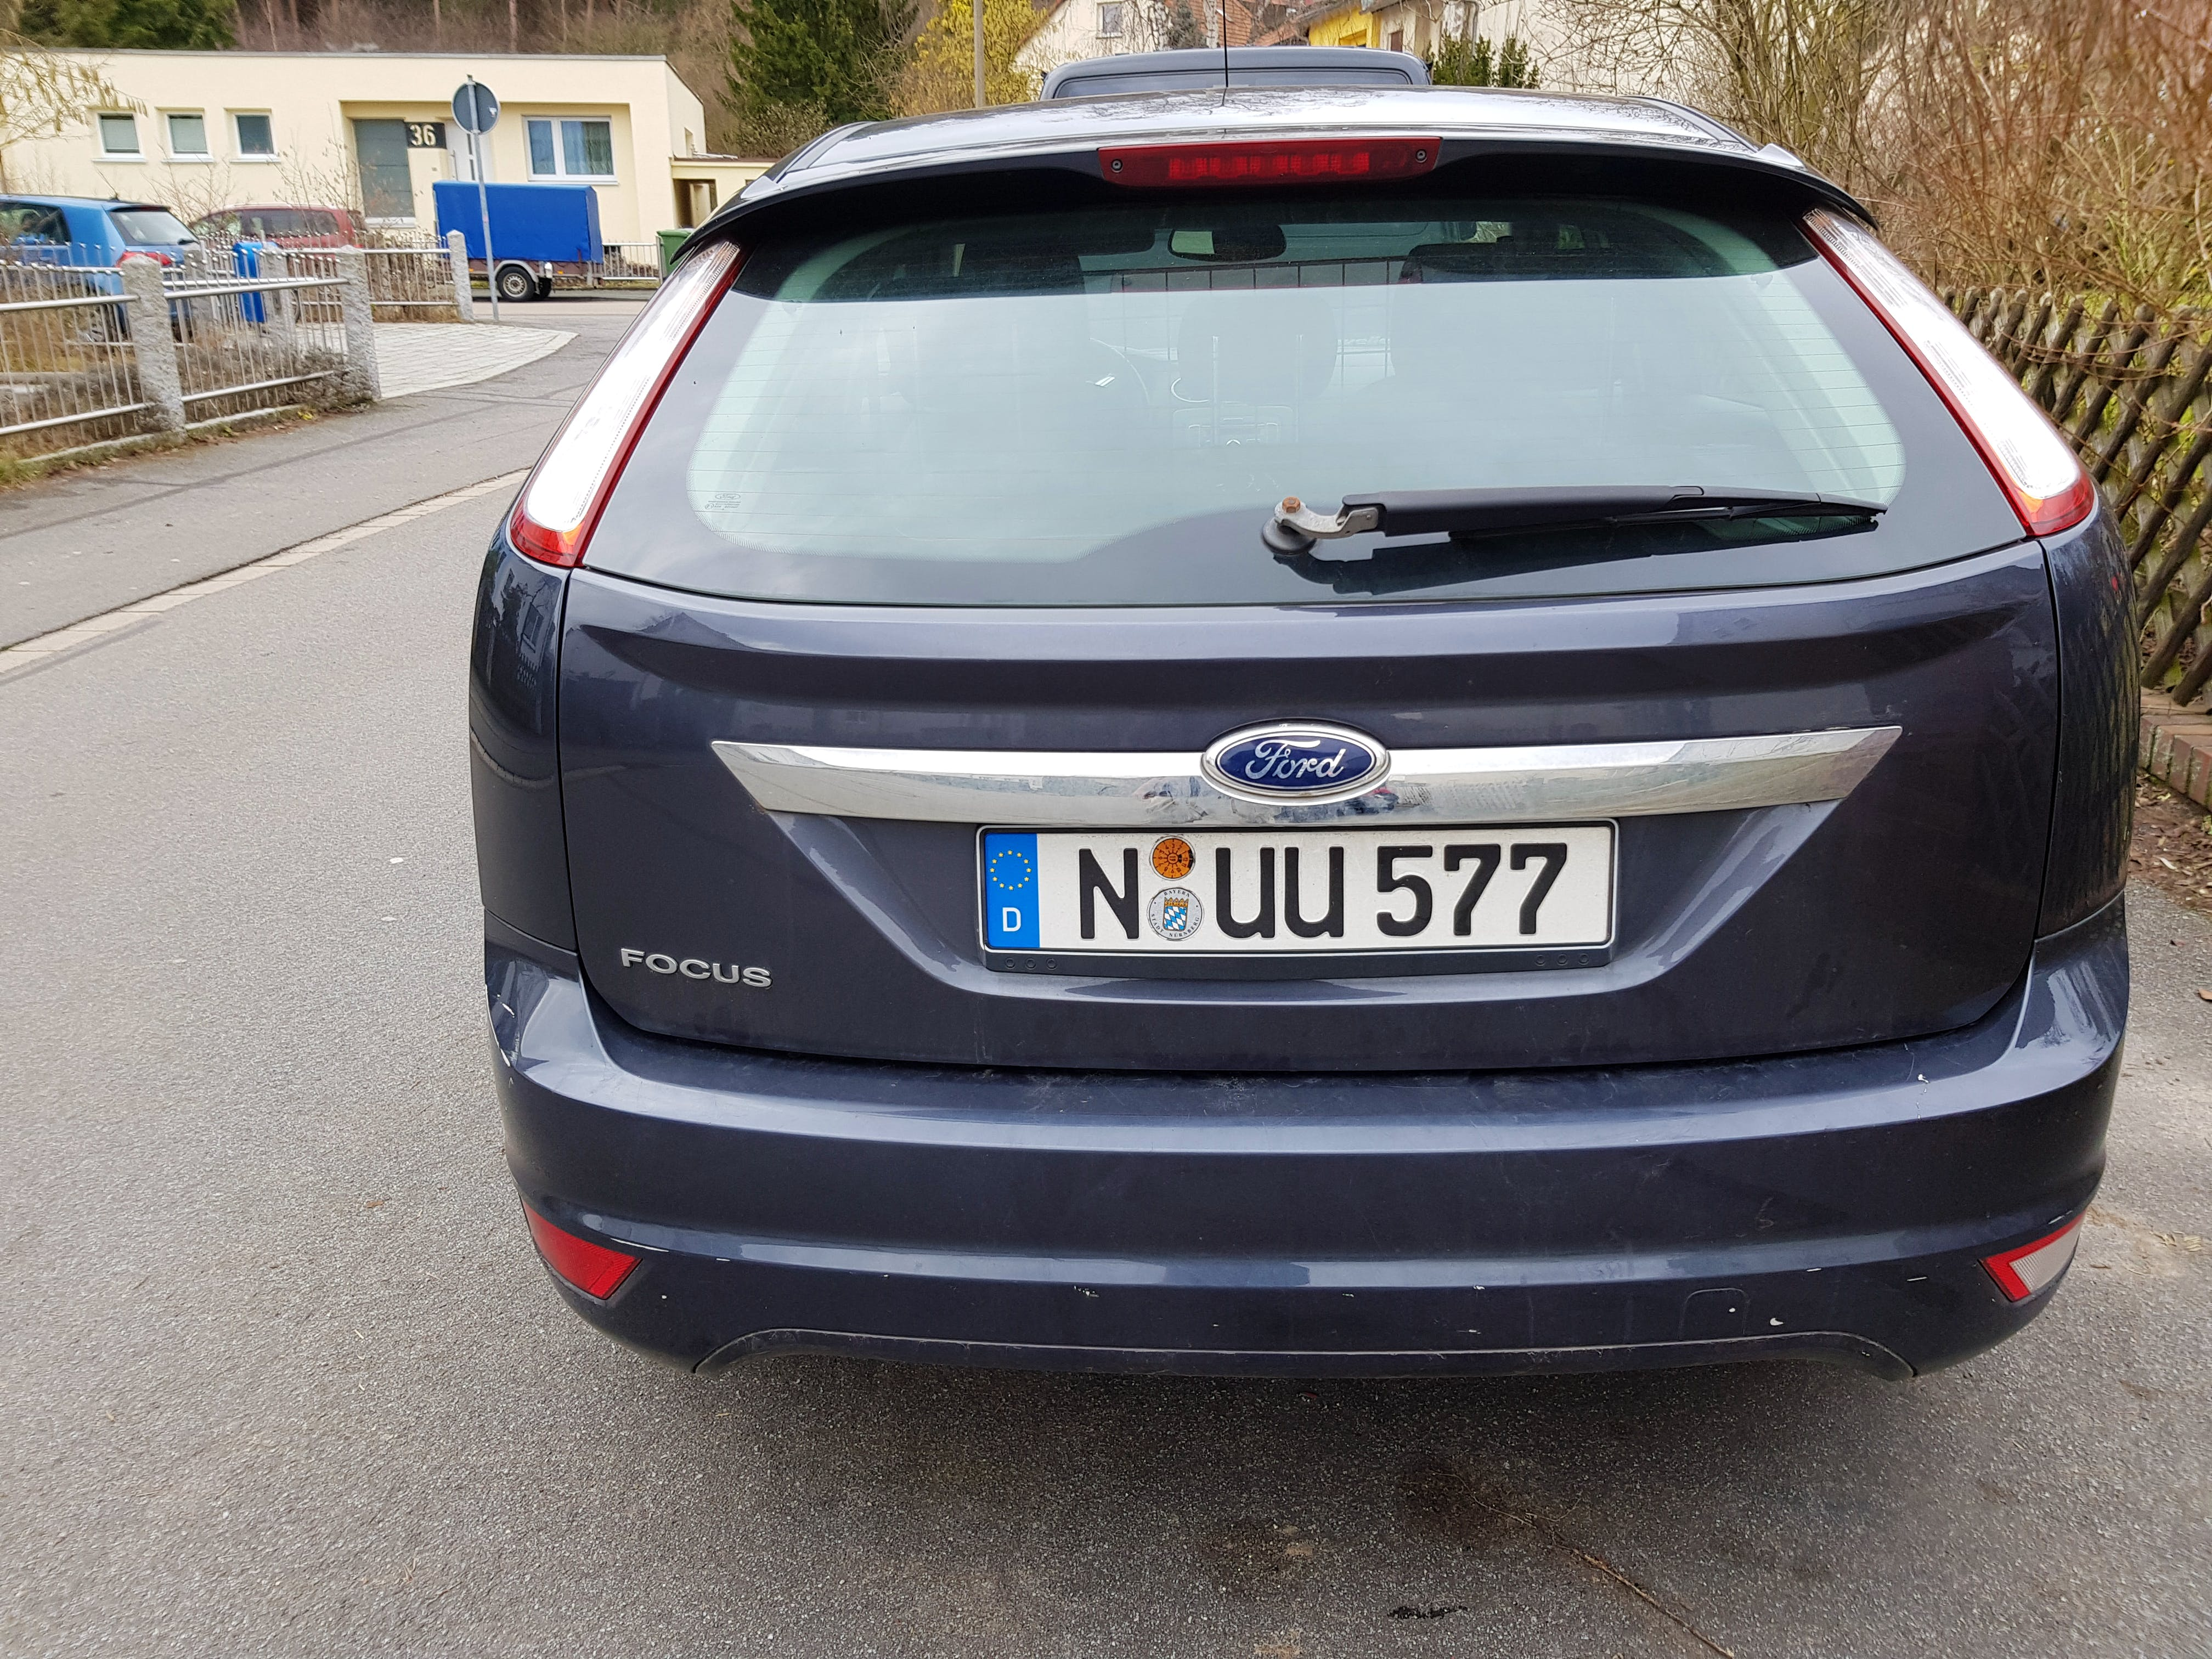 Ford Focus mit Audio-/iPod-Zugang